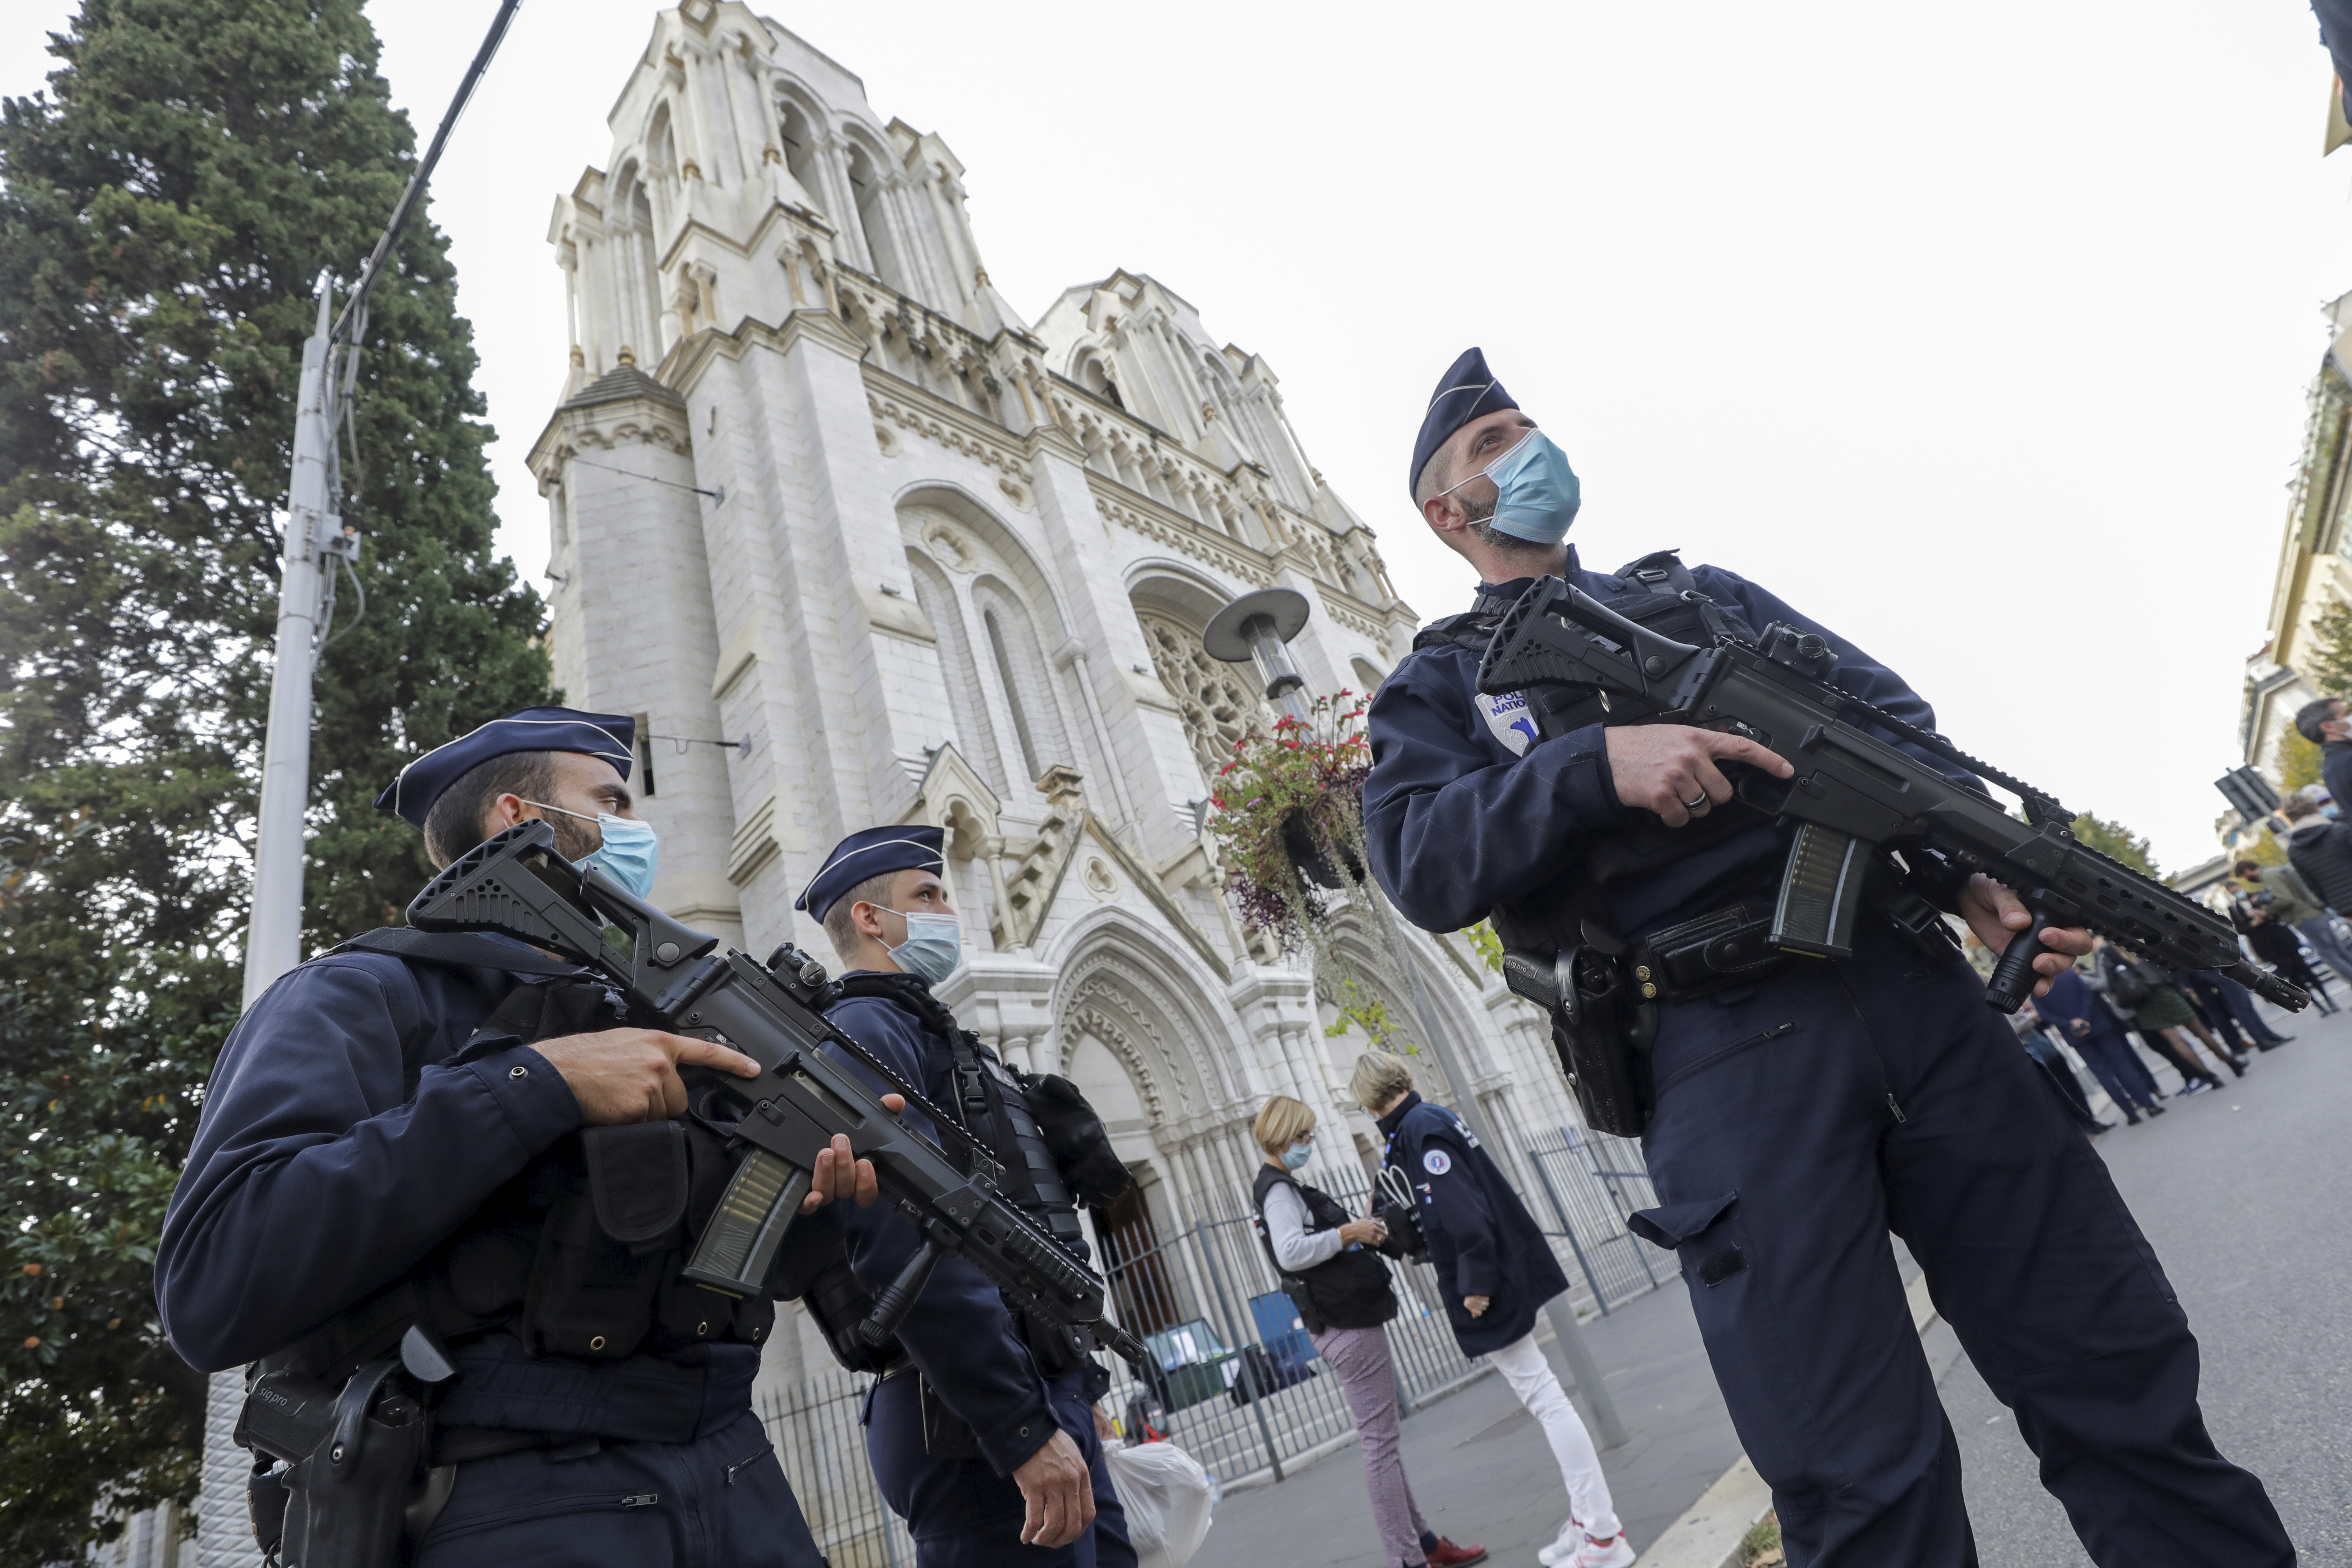 2nd person arrested in France church terrorist attack